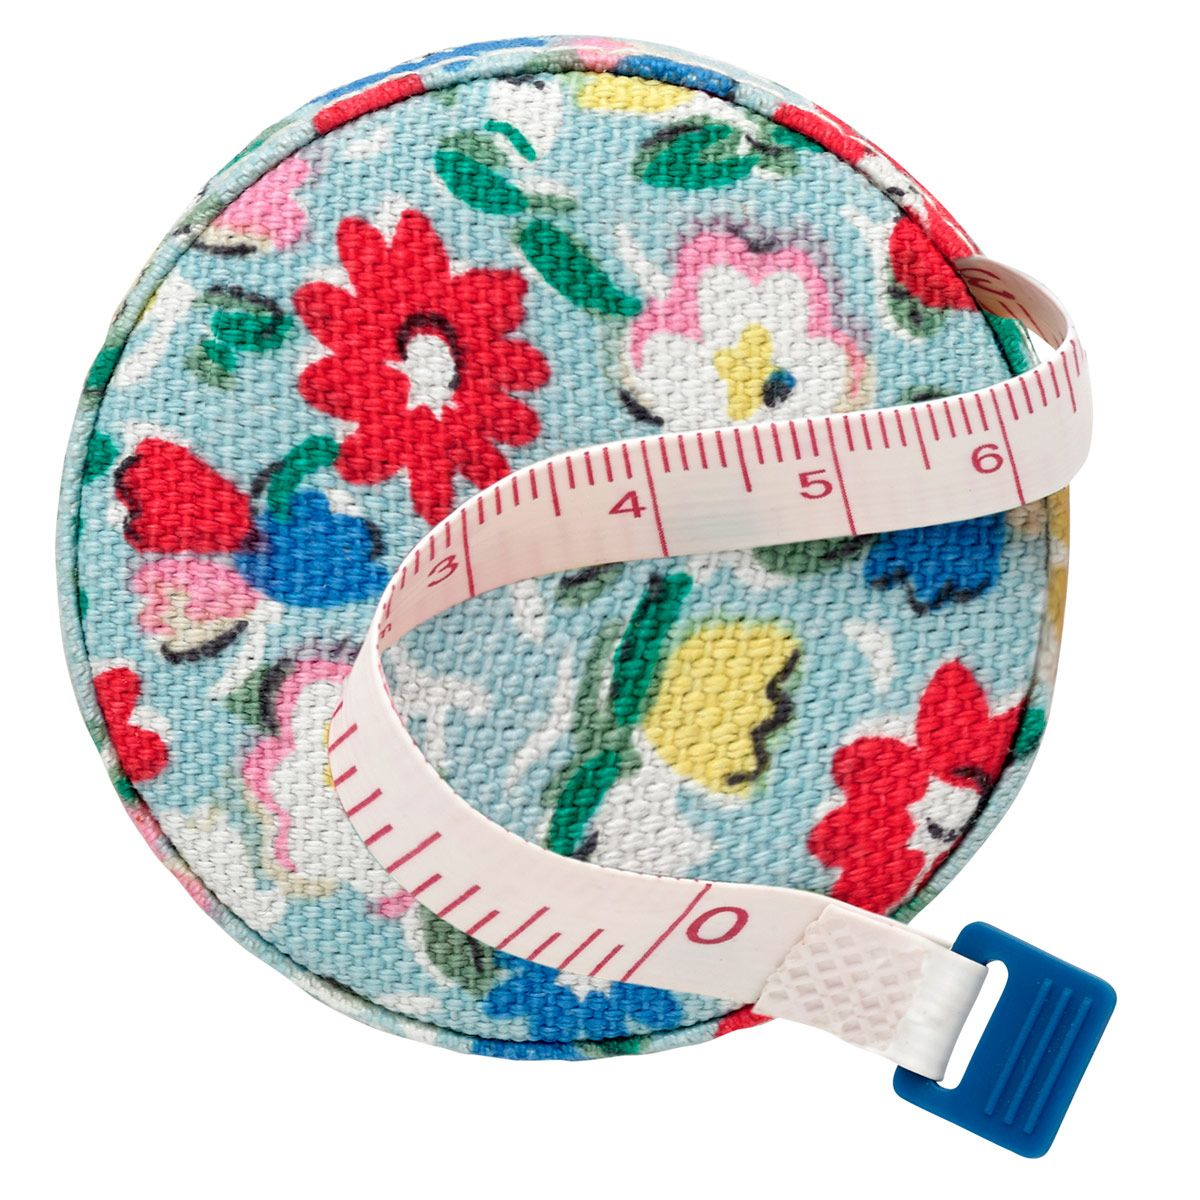 Meadow Ditsy Tape Measure | Make your own Gift | CathKidston